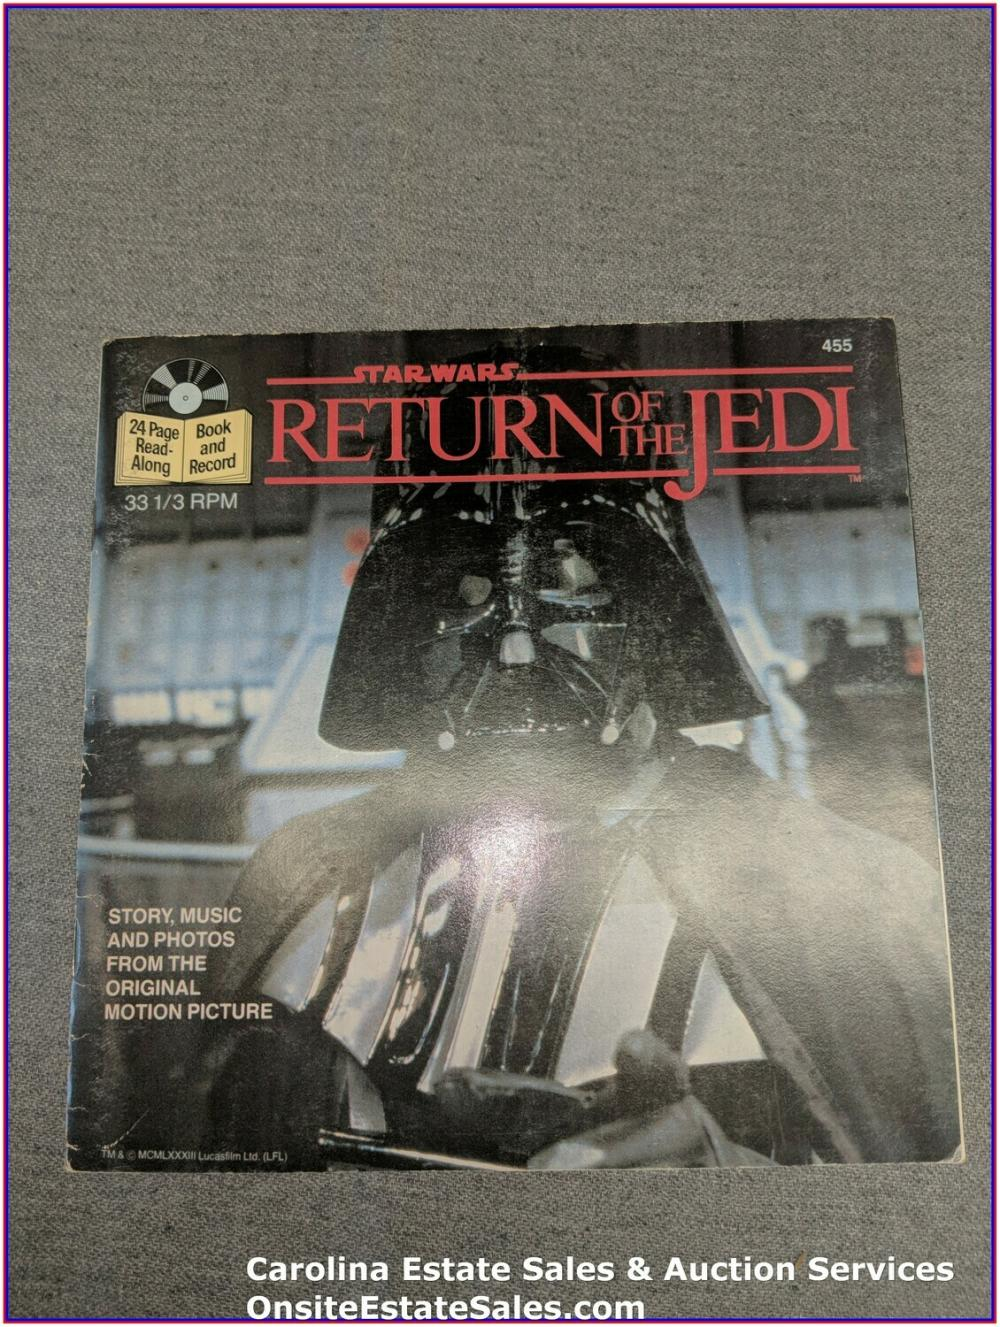 Return of The Jedi Book & Record